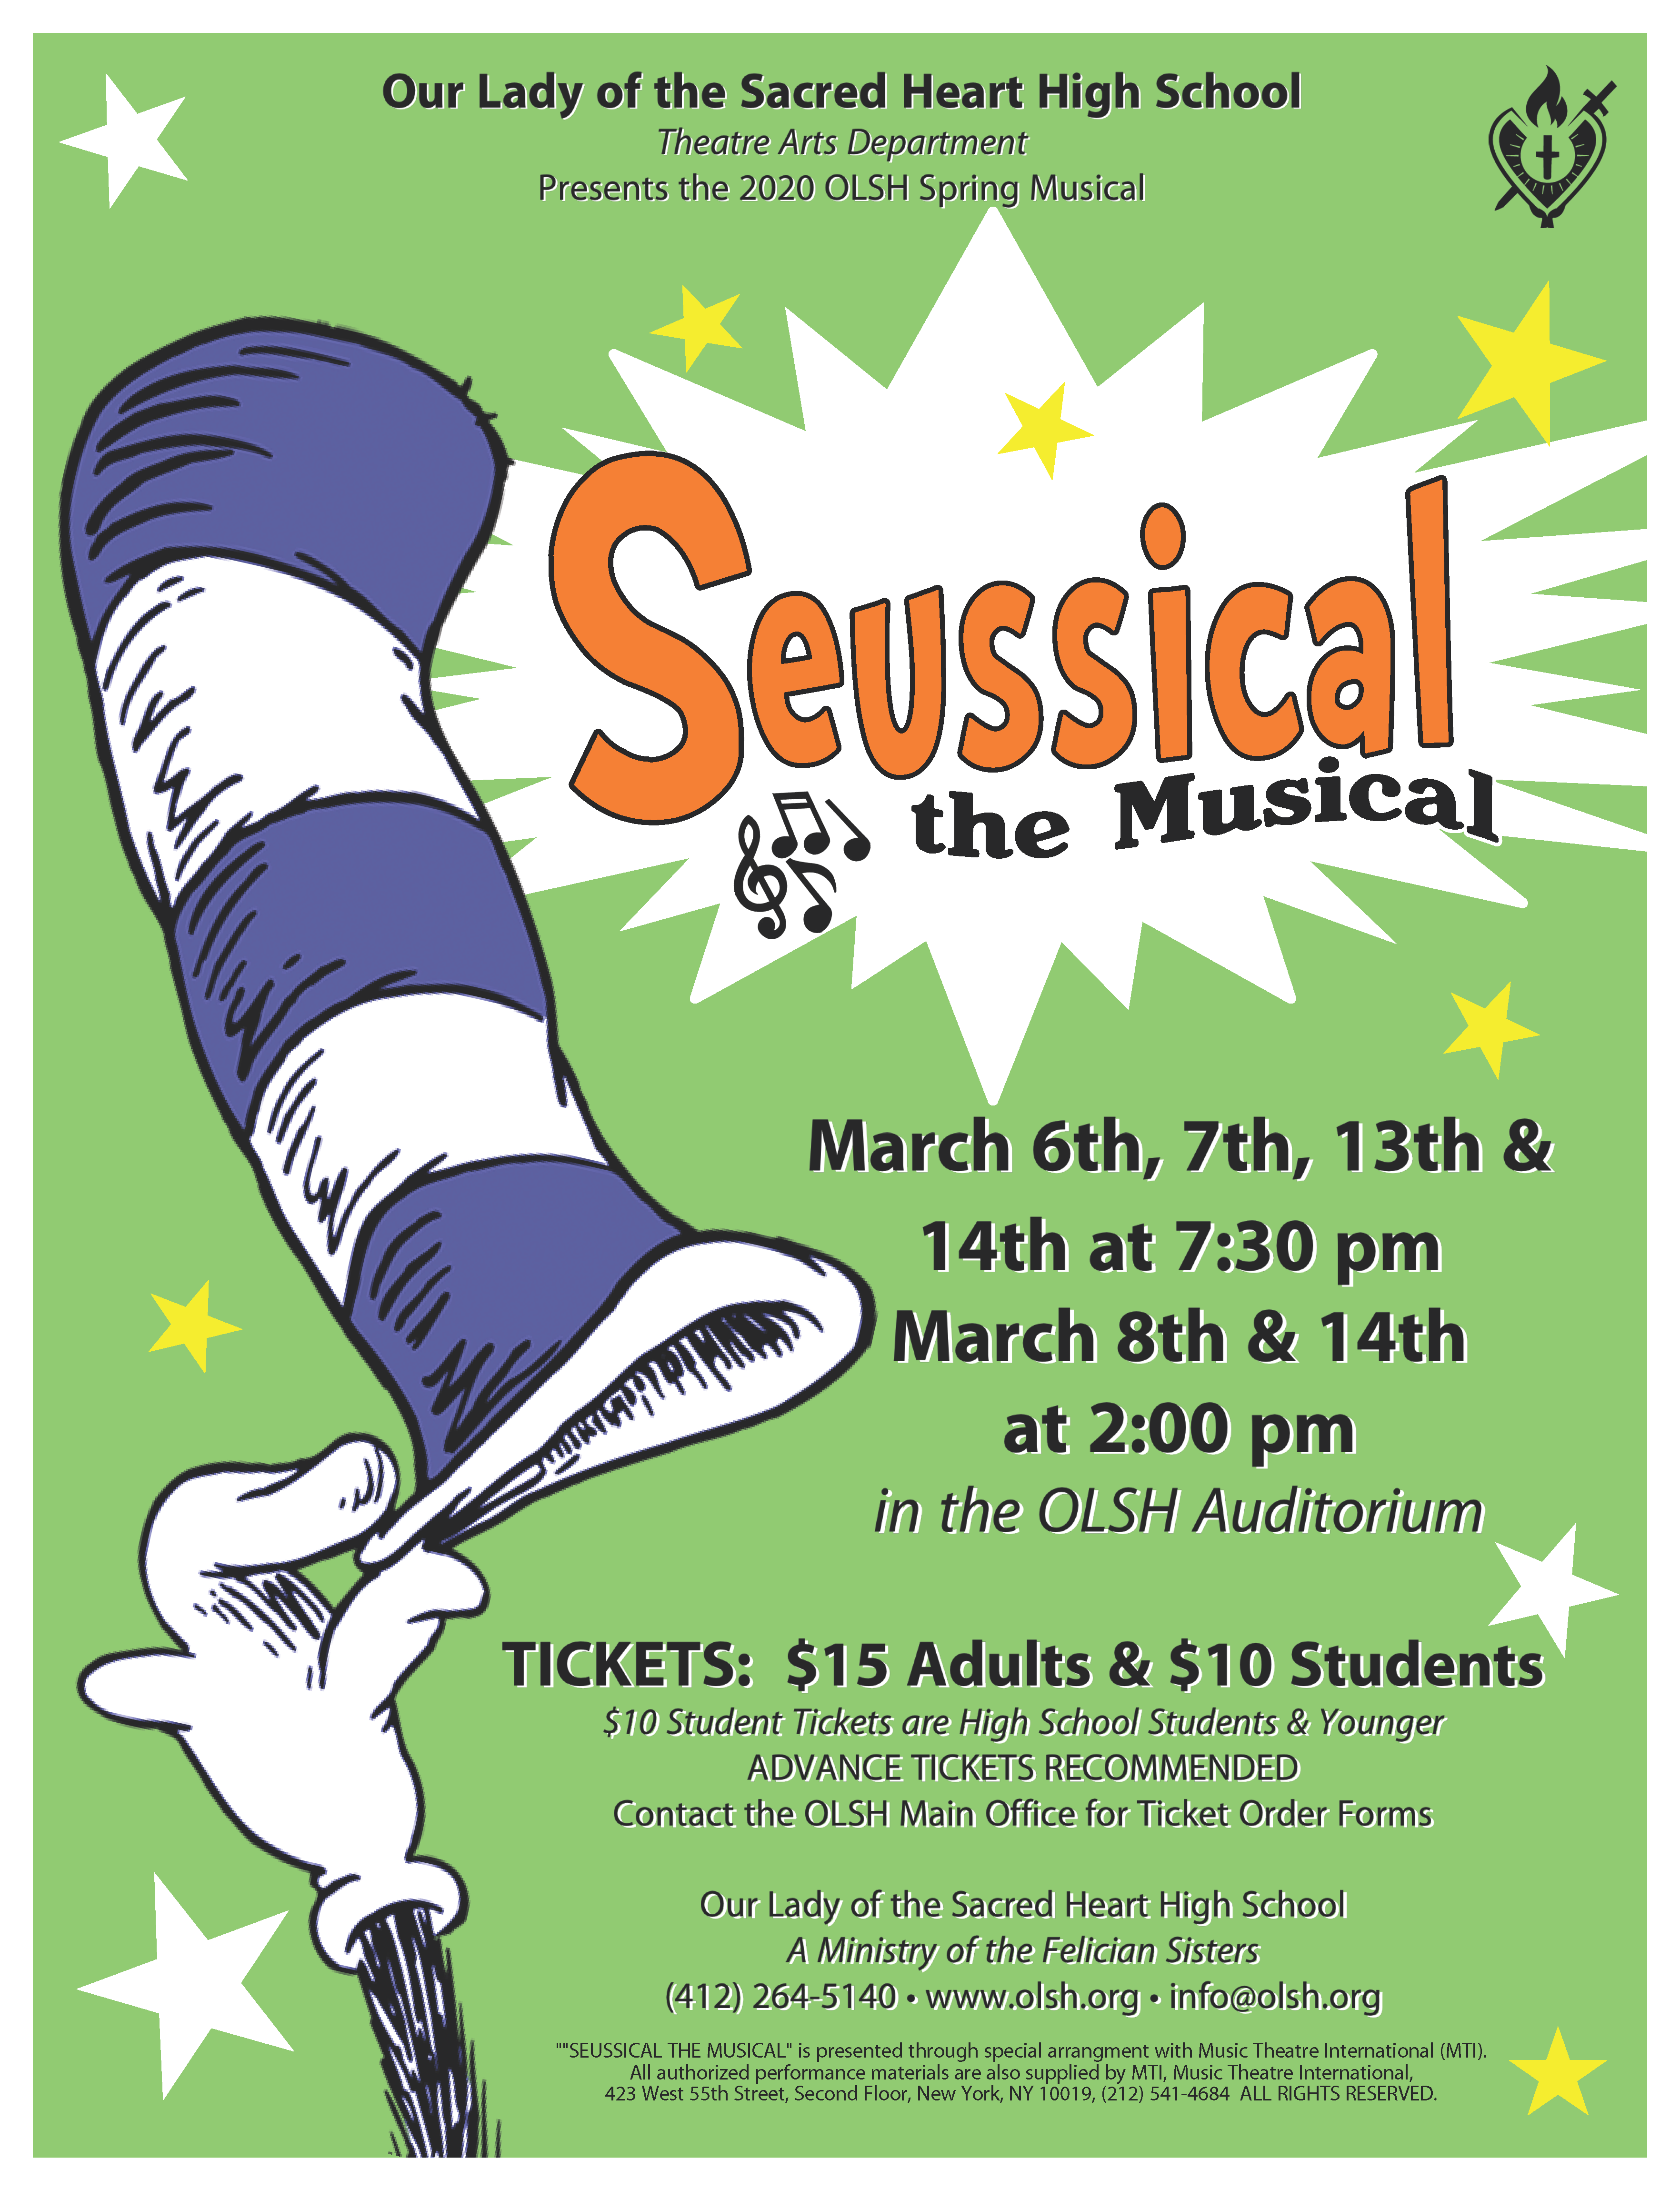 flyer for OLSH performance of Seussical